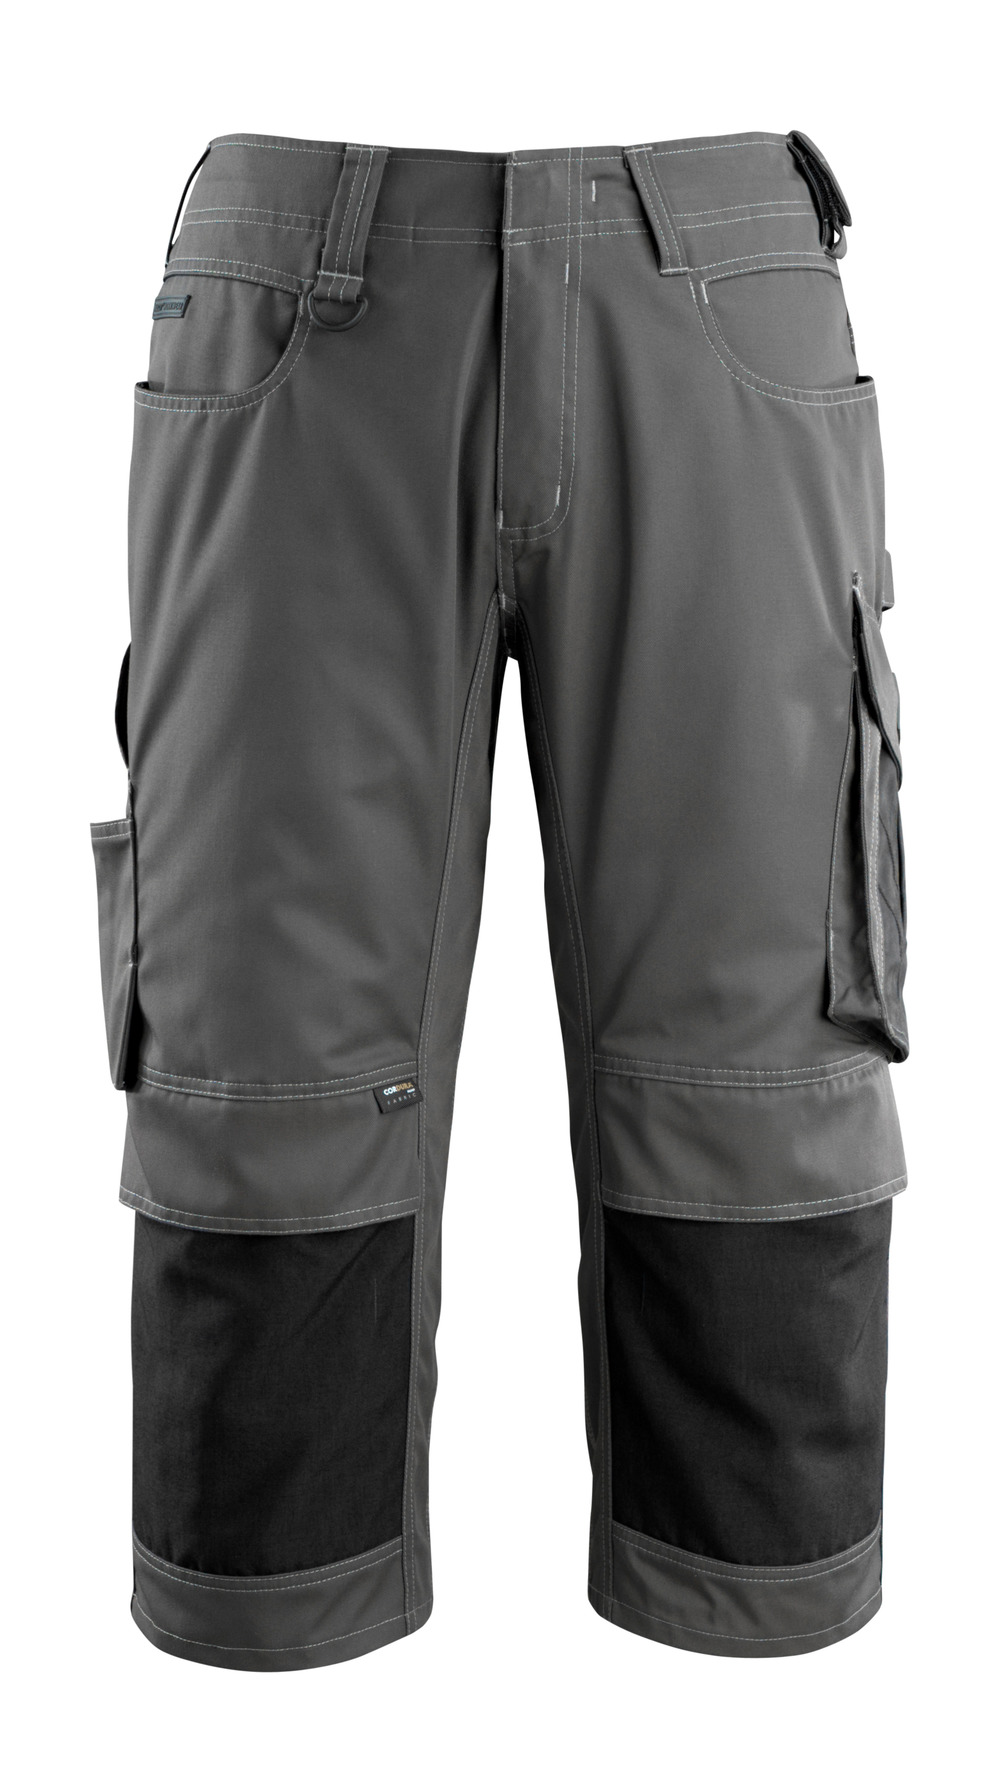 14149-442-1809 ¾ Length Trousers with kneepad pockets - dark anthracite/black